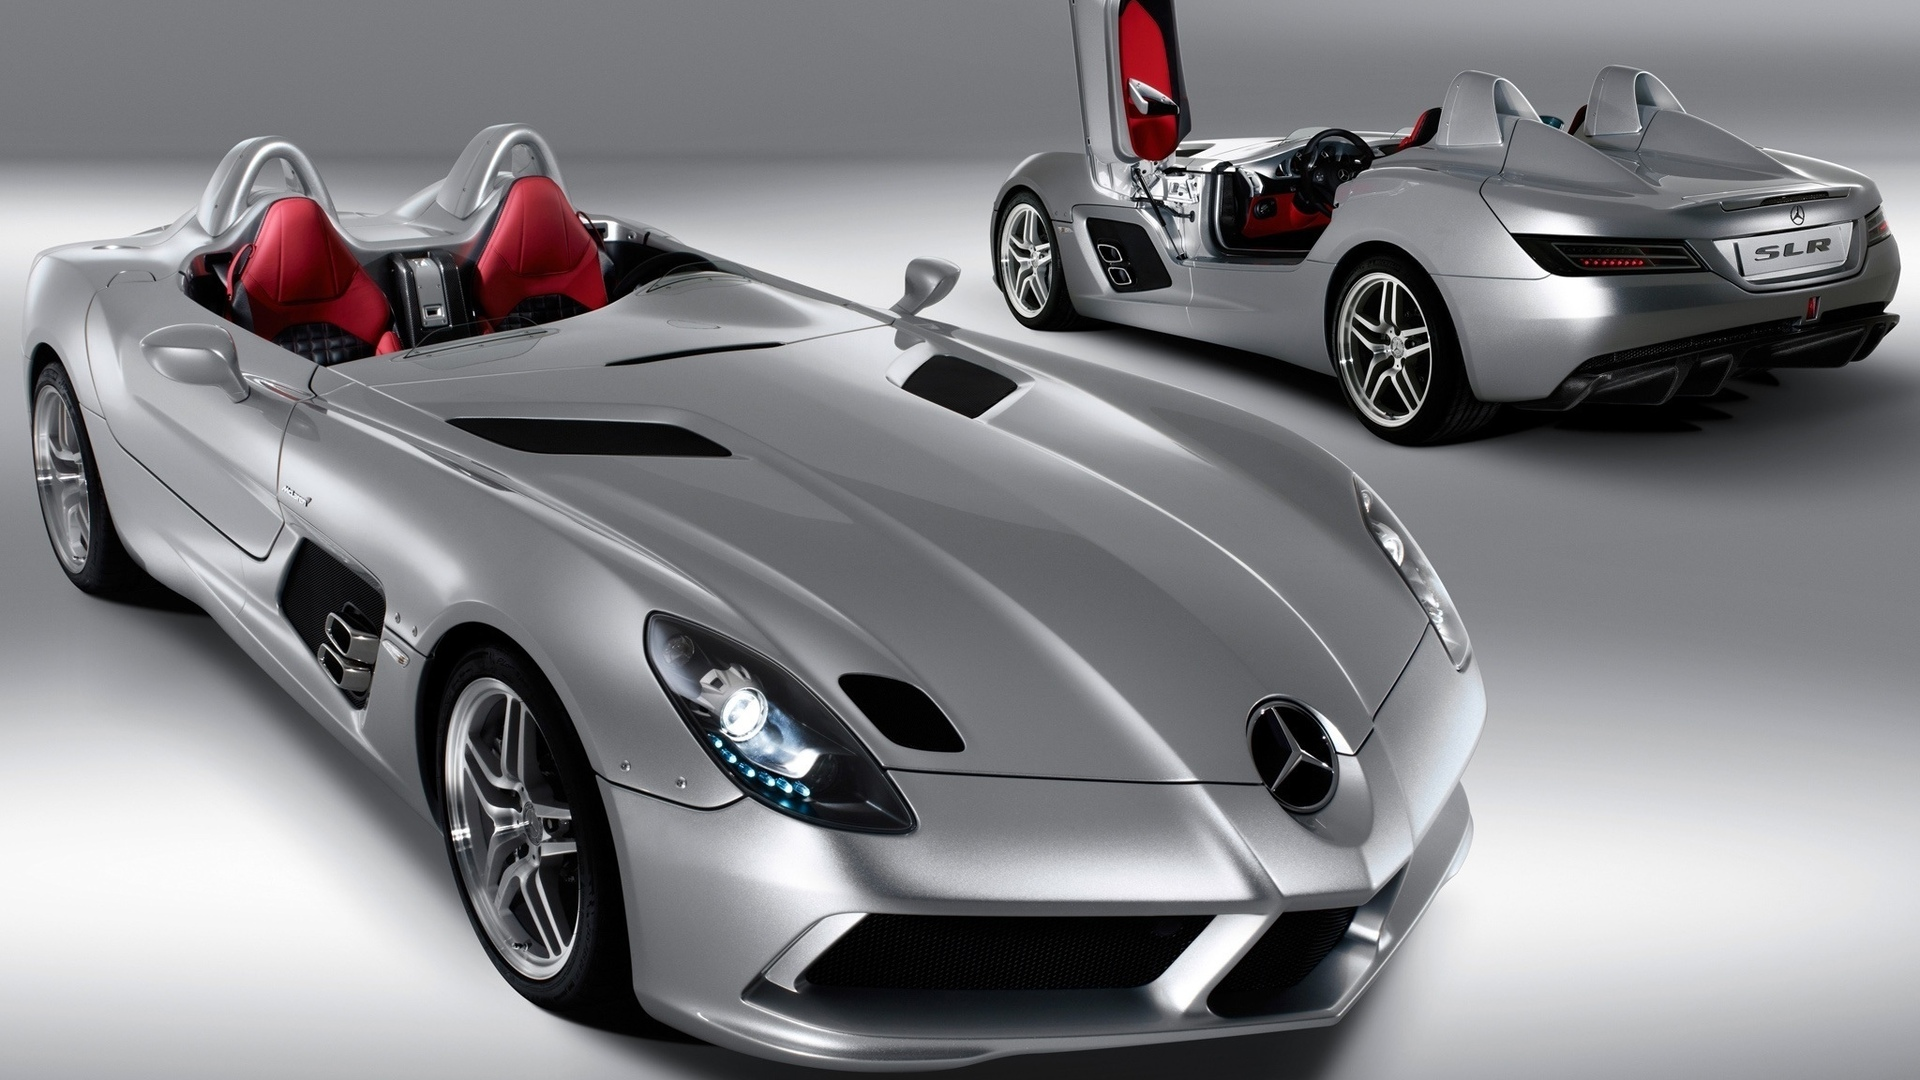 moss, slr, benz, mercedes, mclaren, stirling